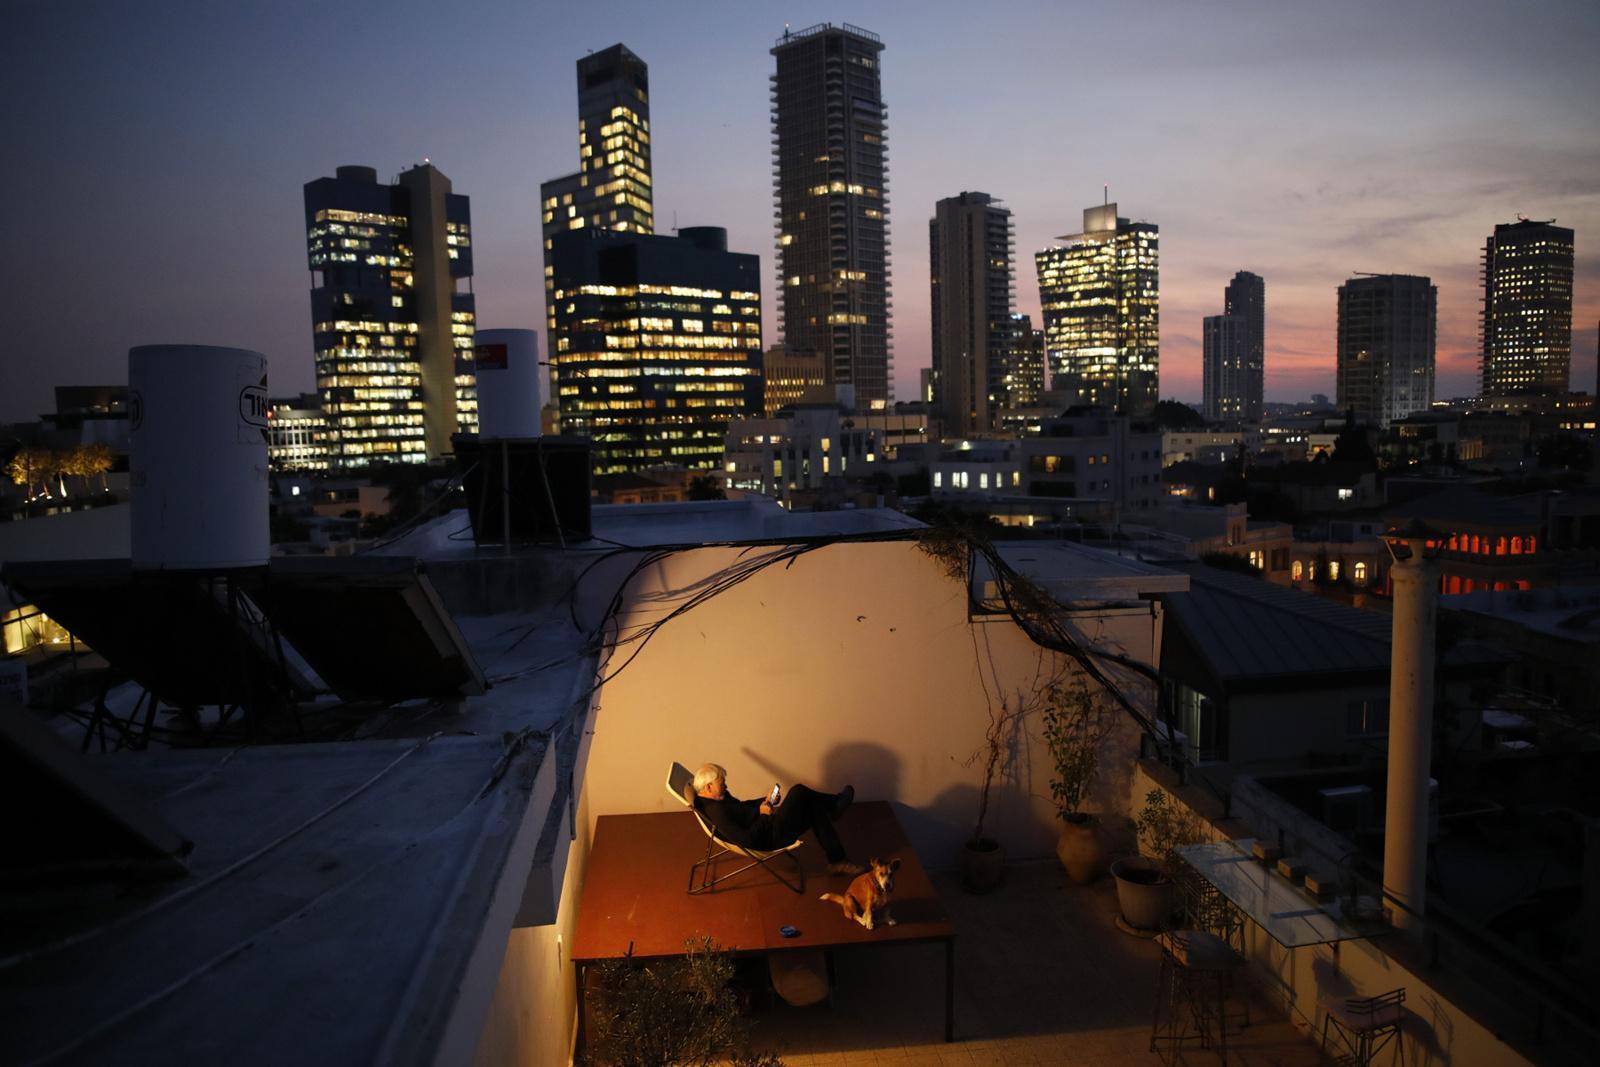 Alexander Flaschenberg, 60, sits on a chair ontop of a table, to enjoy the view on the sea from his rooftop, November 28, 2017, Tel Aviv, Israel. His rooftop presents a personal haven for him, giving him an opportunity to unwind from his work.